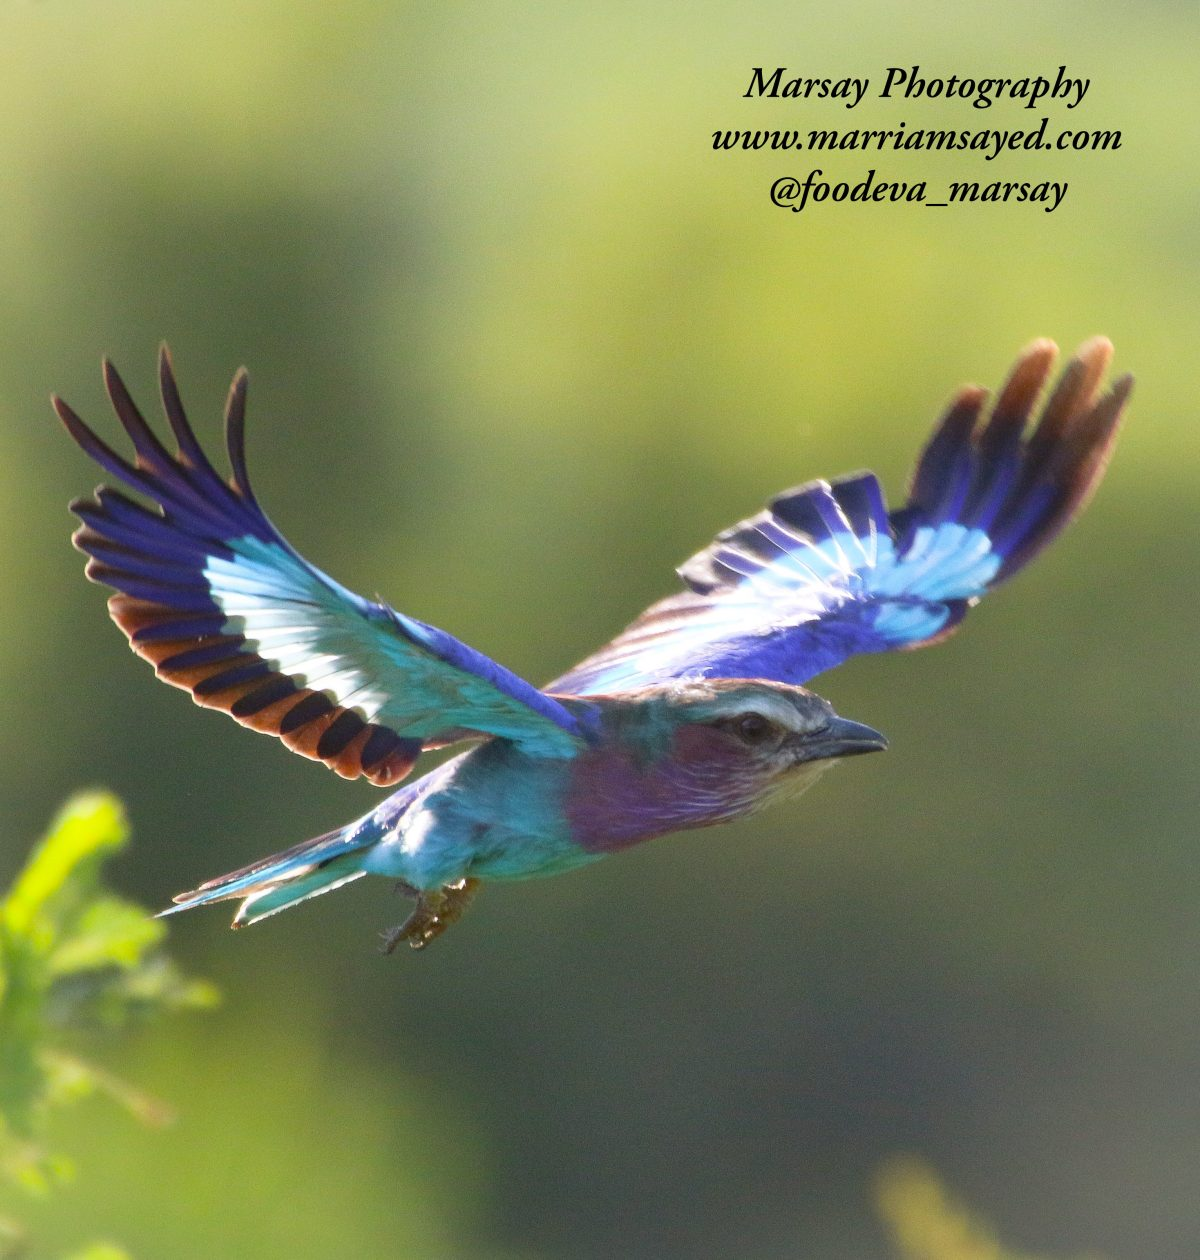 lilac-breasted-roller-in-flight2-1200x1260.jpg